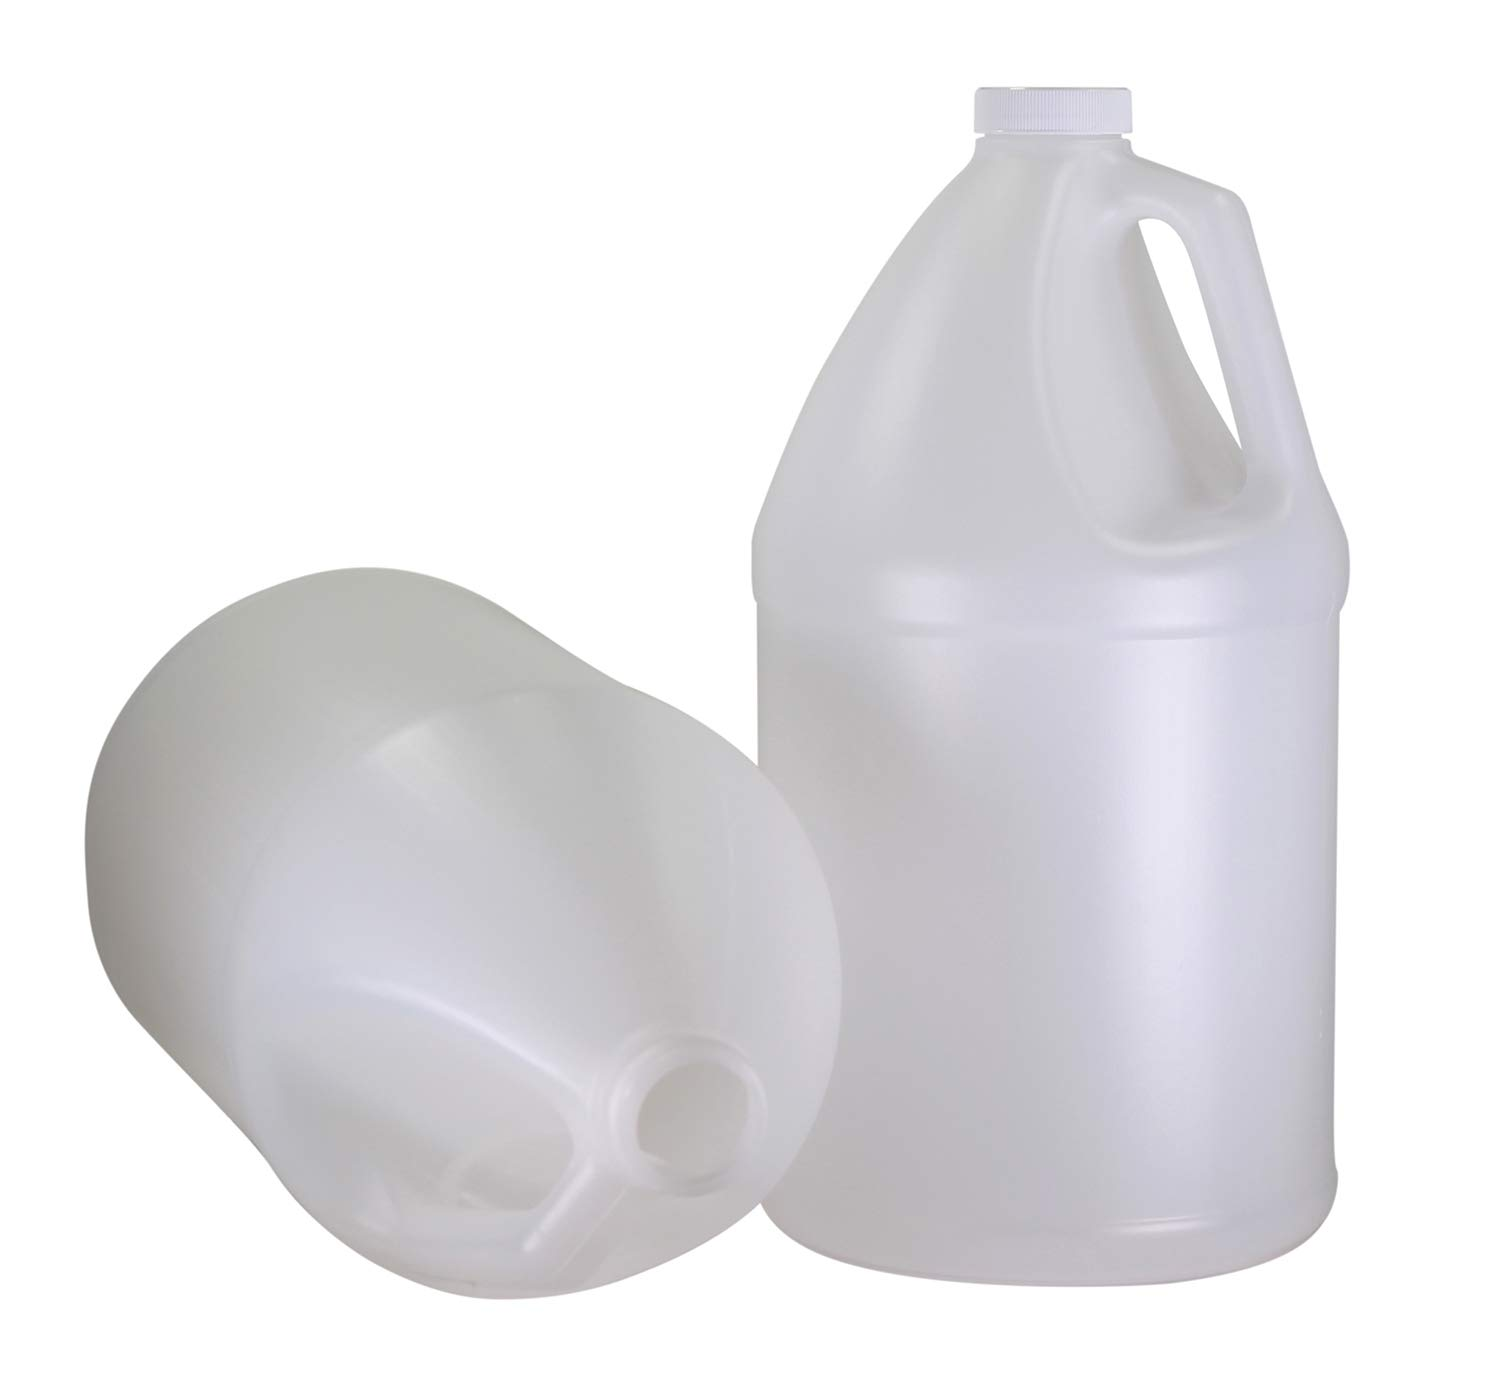 Pinnacle Mercantile 1-Gallon Plastic Jug (2 -Pack) Reusable, Food-Safe, BPA Free | Heavy-Duty HDPE Containers for Water, Sauces, Soaps, Detergents, Liquids | Screw-On Cap …